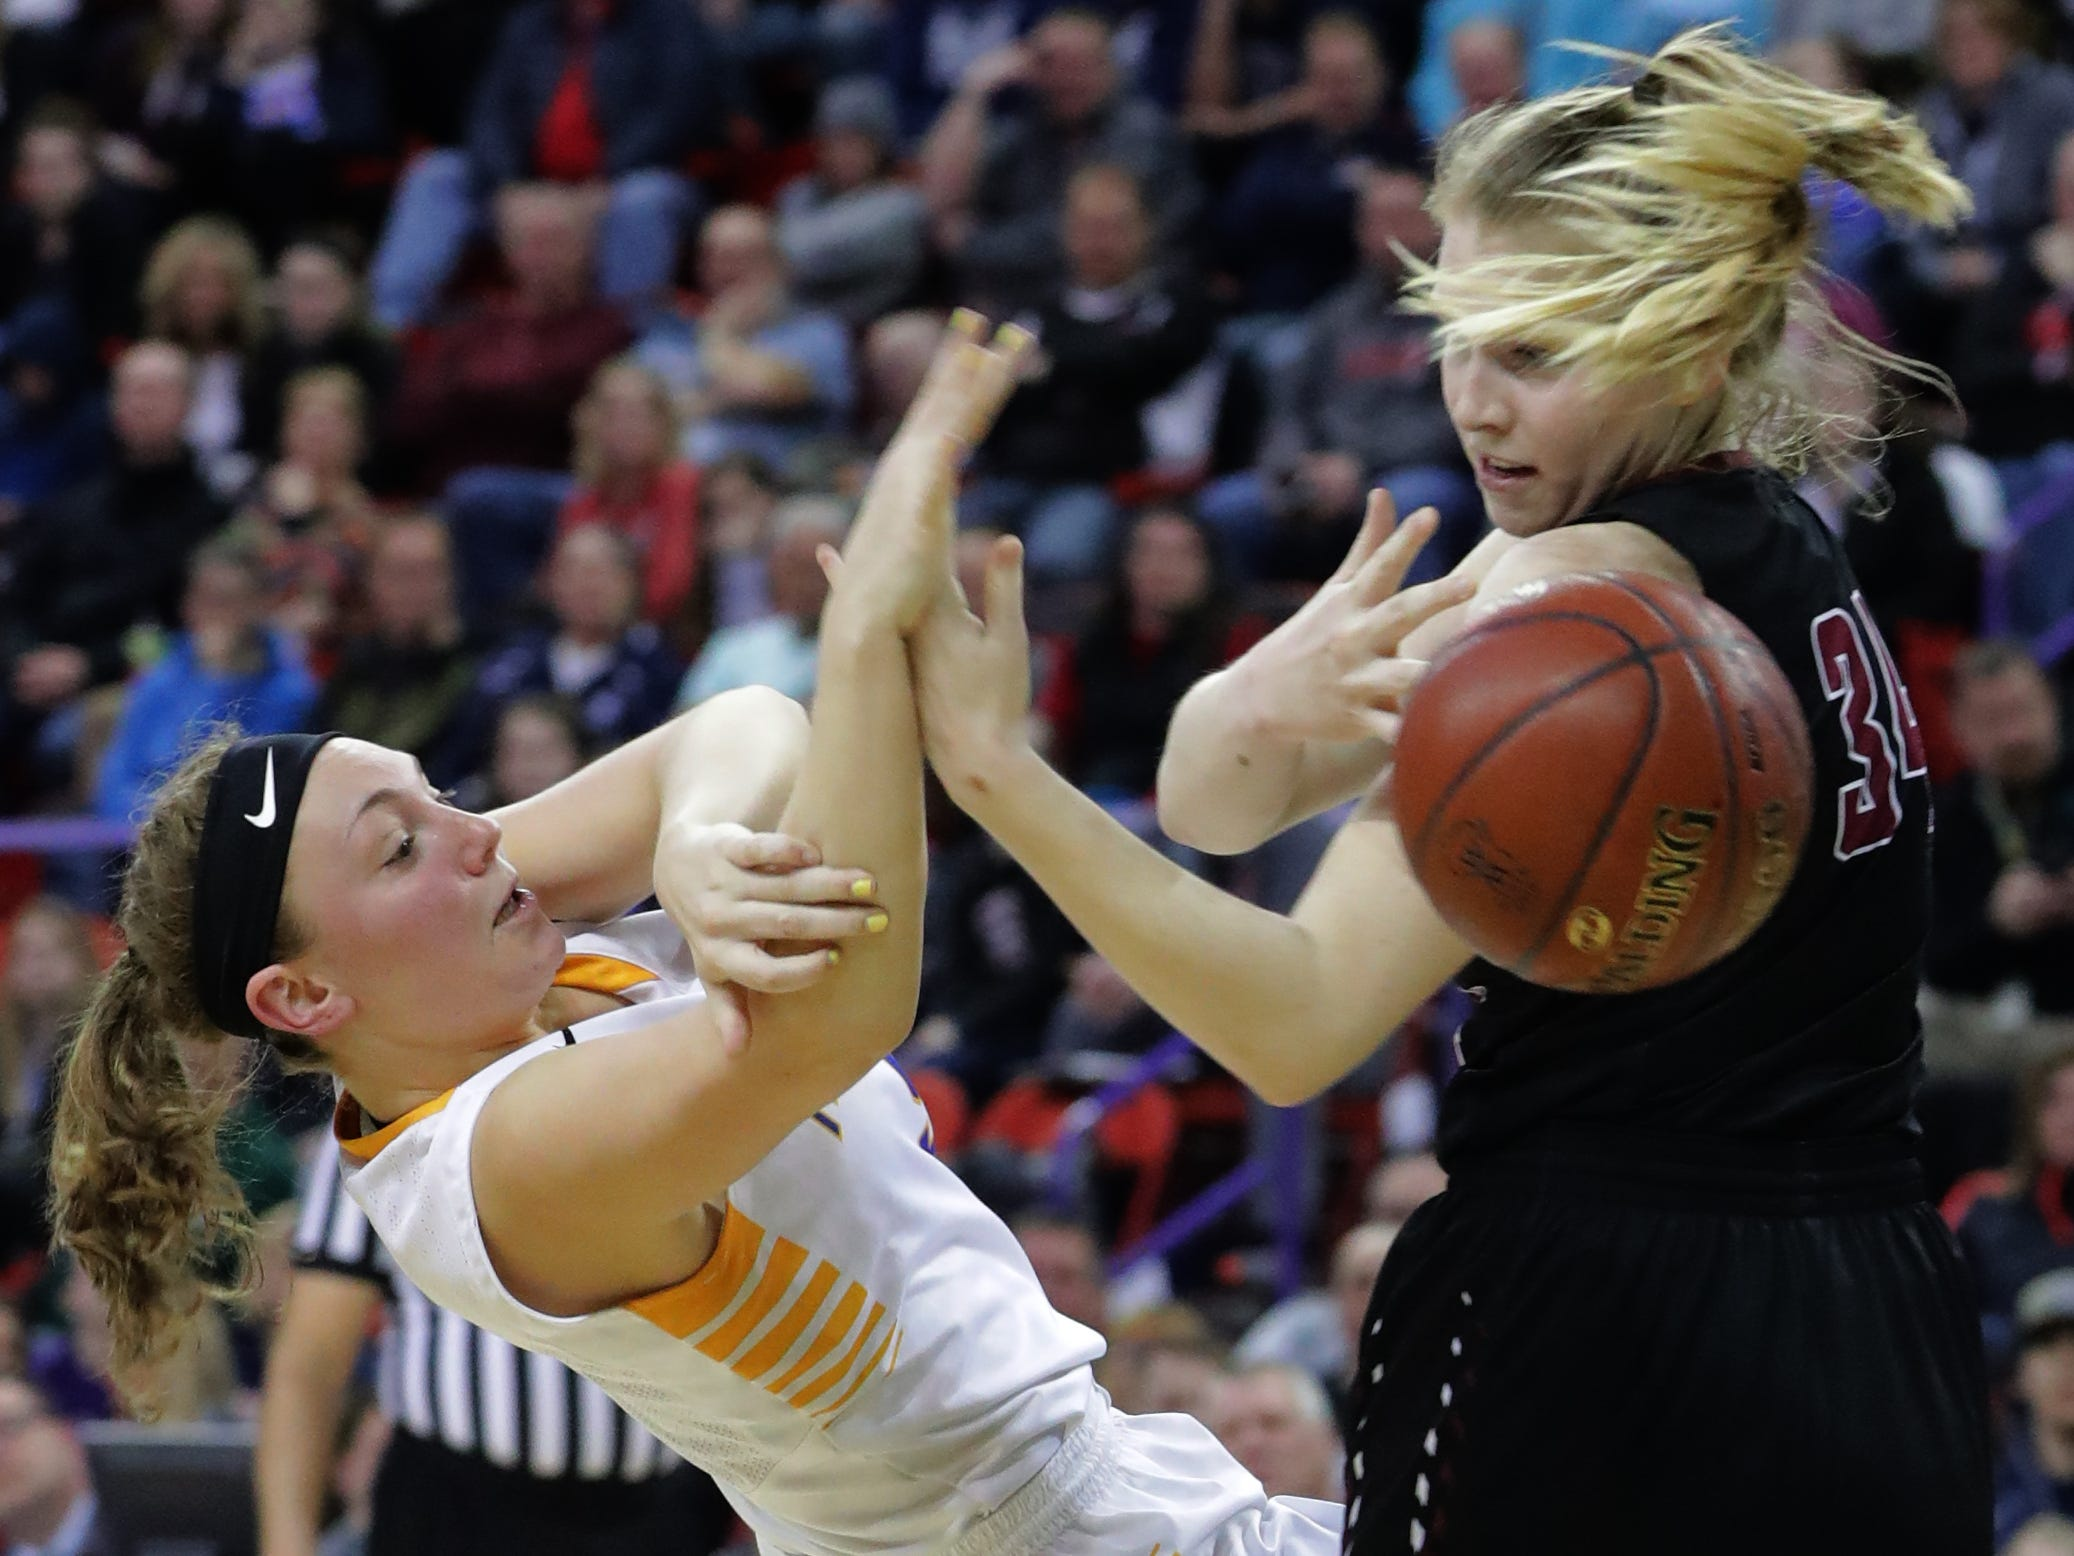 Mukwonago's Grace Beyer (5) loses the ball after colliding with Middleton's Hannah Flottmeyer (34) during the second half of their WIAA Division 1 state semifinal game March 8, 2019, at the Resch Center in Ashwaubenon. Middleton beat Mukwonago, 62-53.